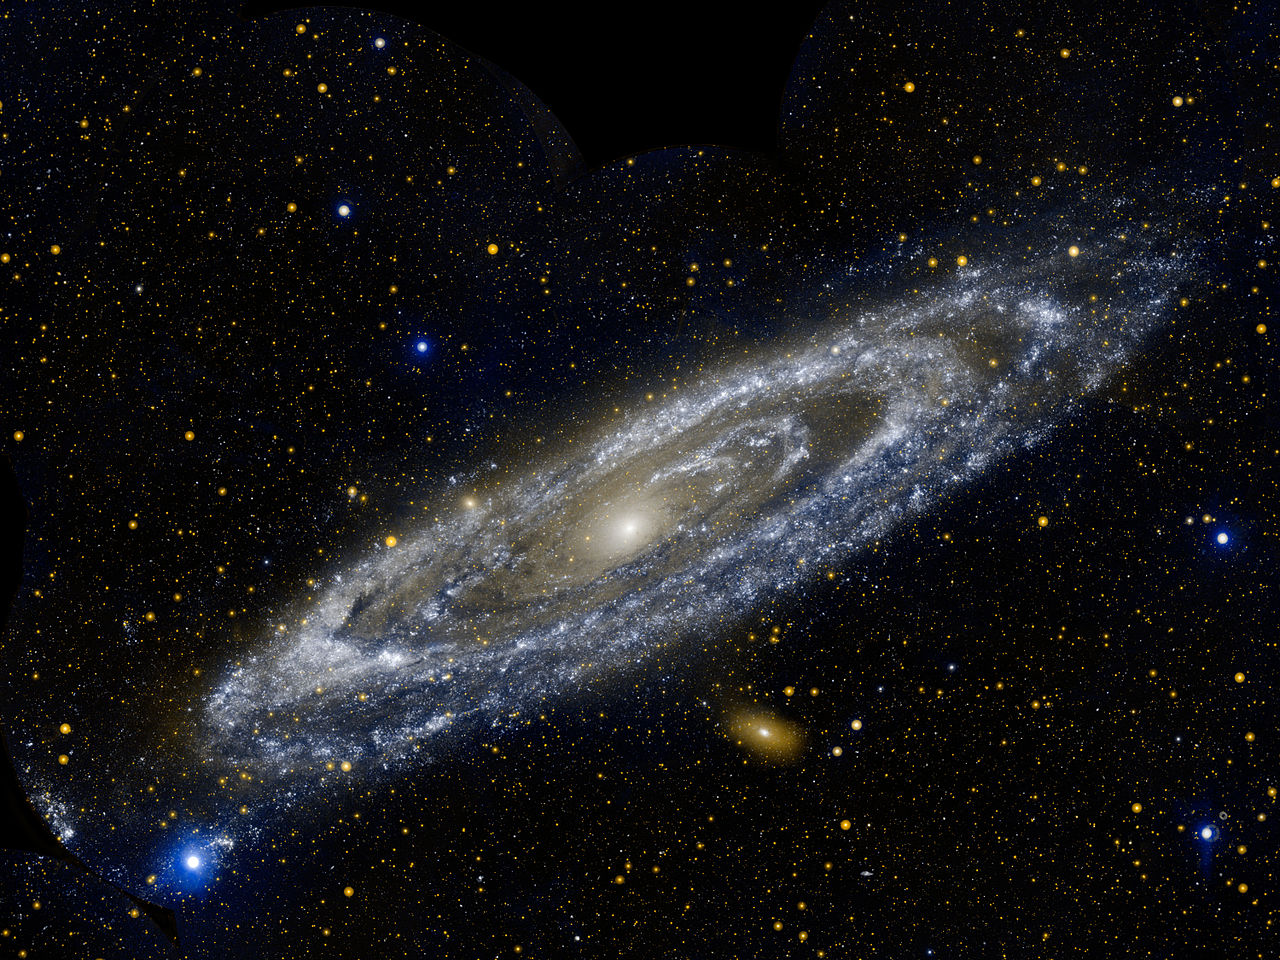 Caption: The Andromeda galaxy is our largest galactic neighbor, measuring 260,000 light-years across., Credit: NASA/JPL-Caltech